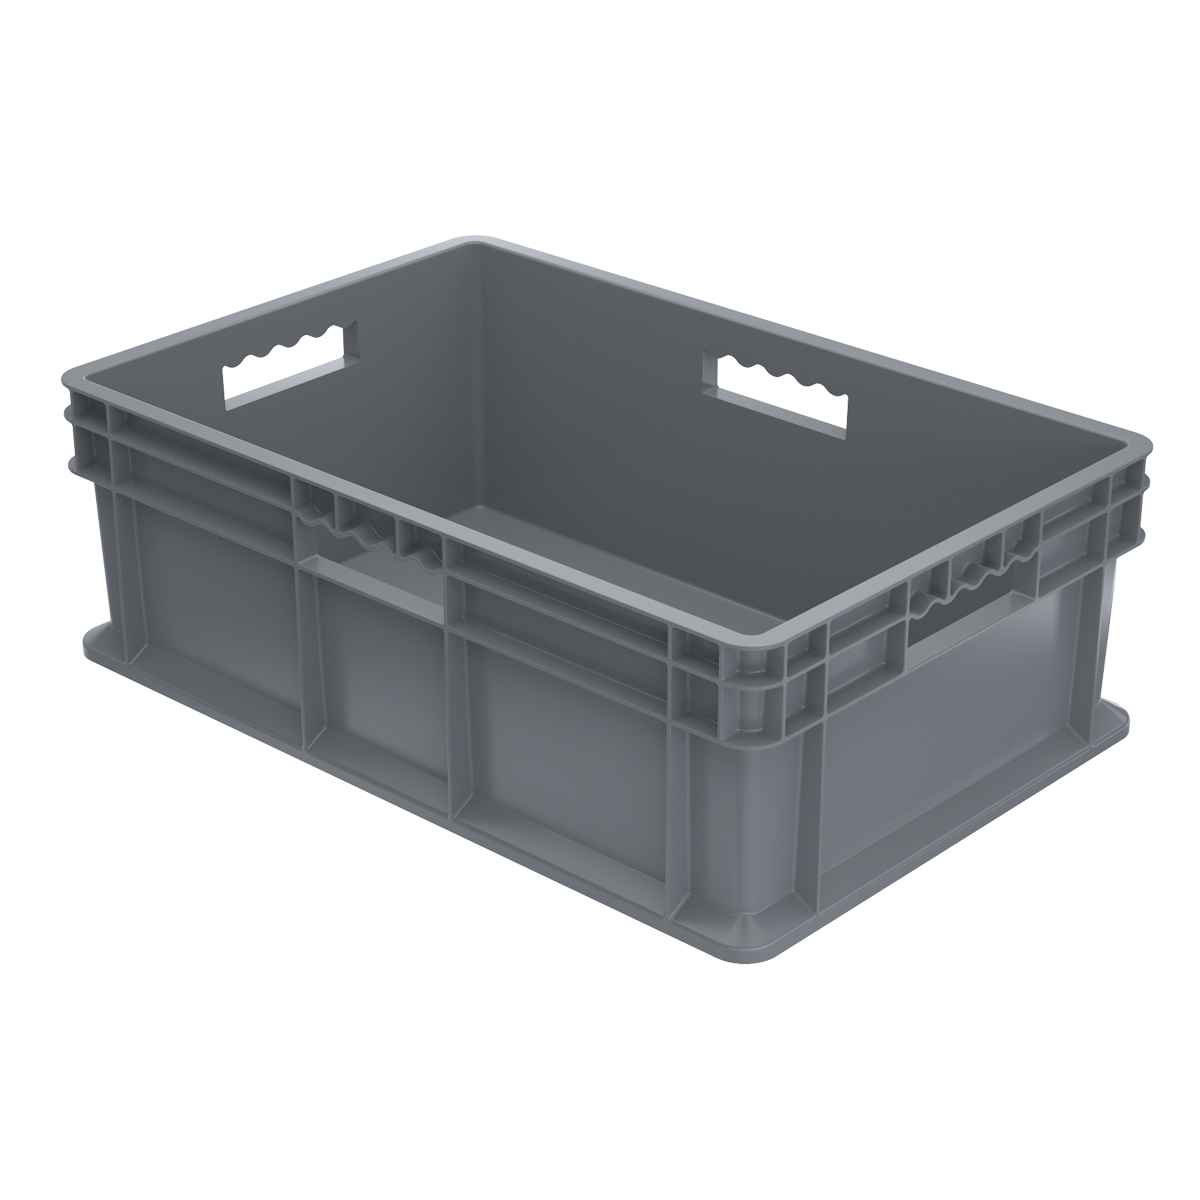 Straight Wall Container, Solid 23-3/4 x 15-3/4 x 8-1/4, Gray (37688GREY).  This item sold in carton quantities of 4.